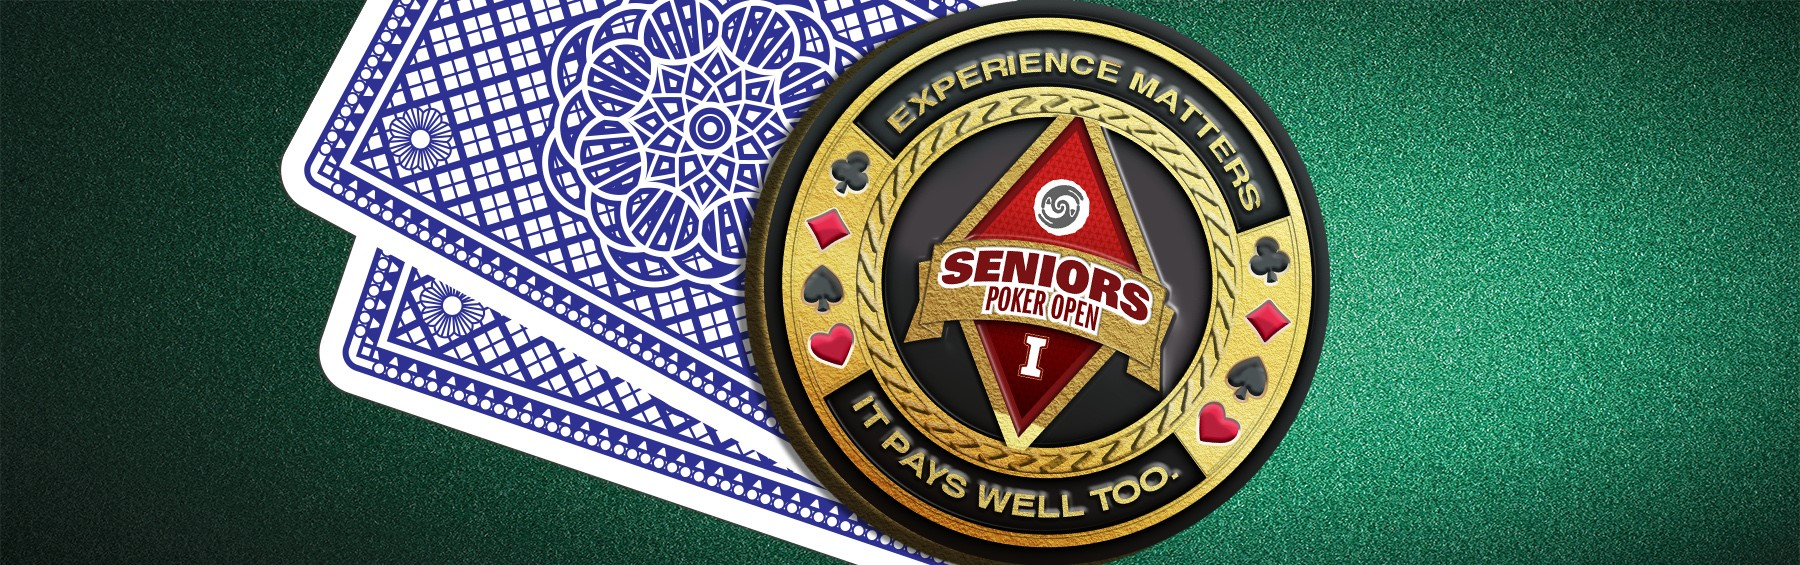 Arena Poker Room Seniors Poker Open